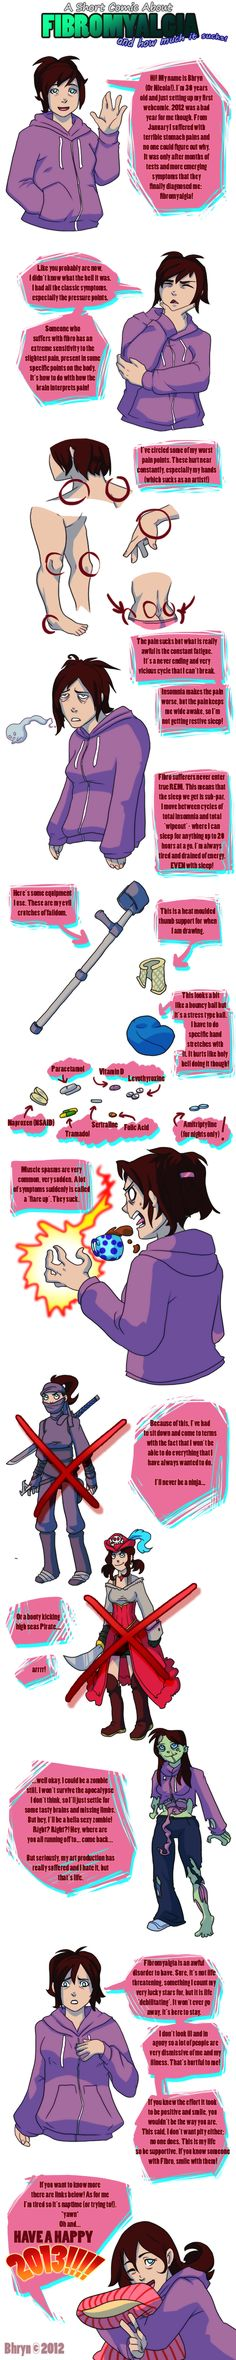 All About Fibromyalgia - An Invisible Disease by Bhryn.deviantart.com on @deviantART